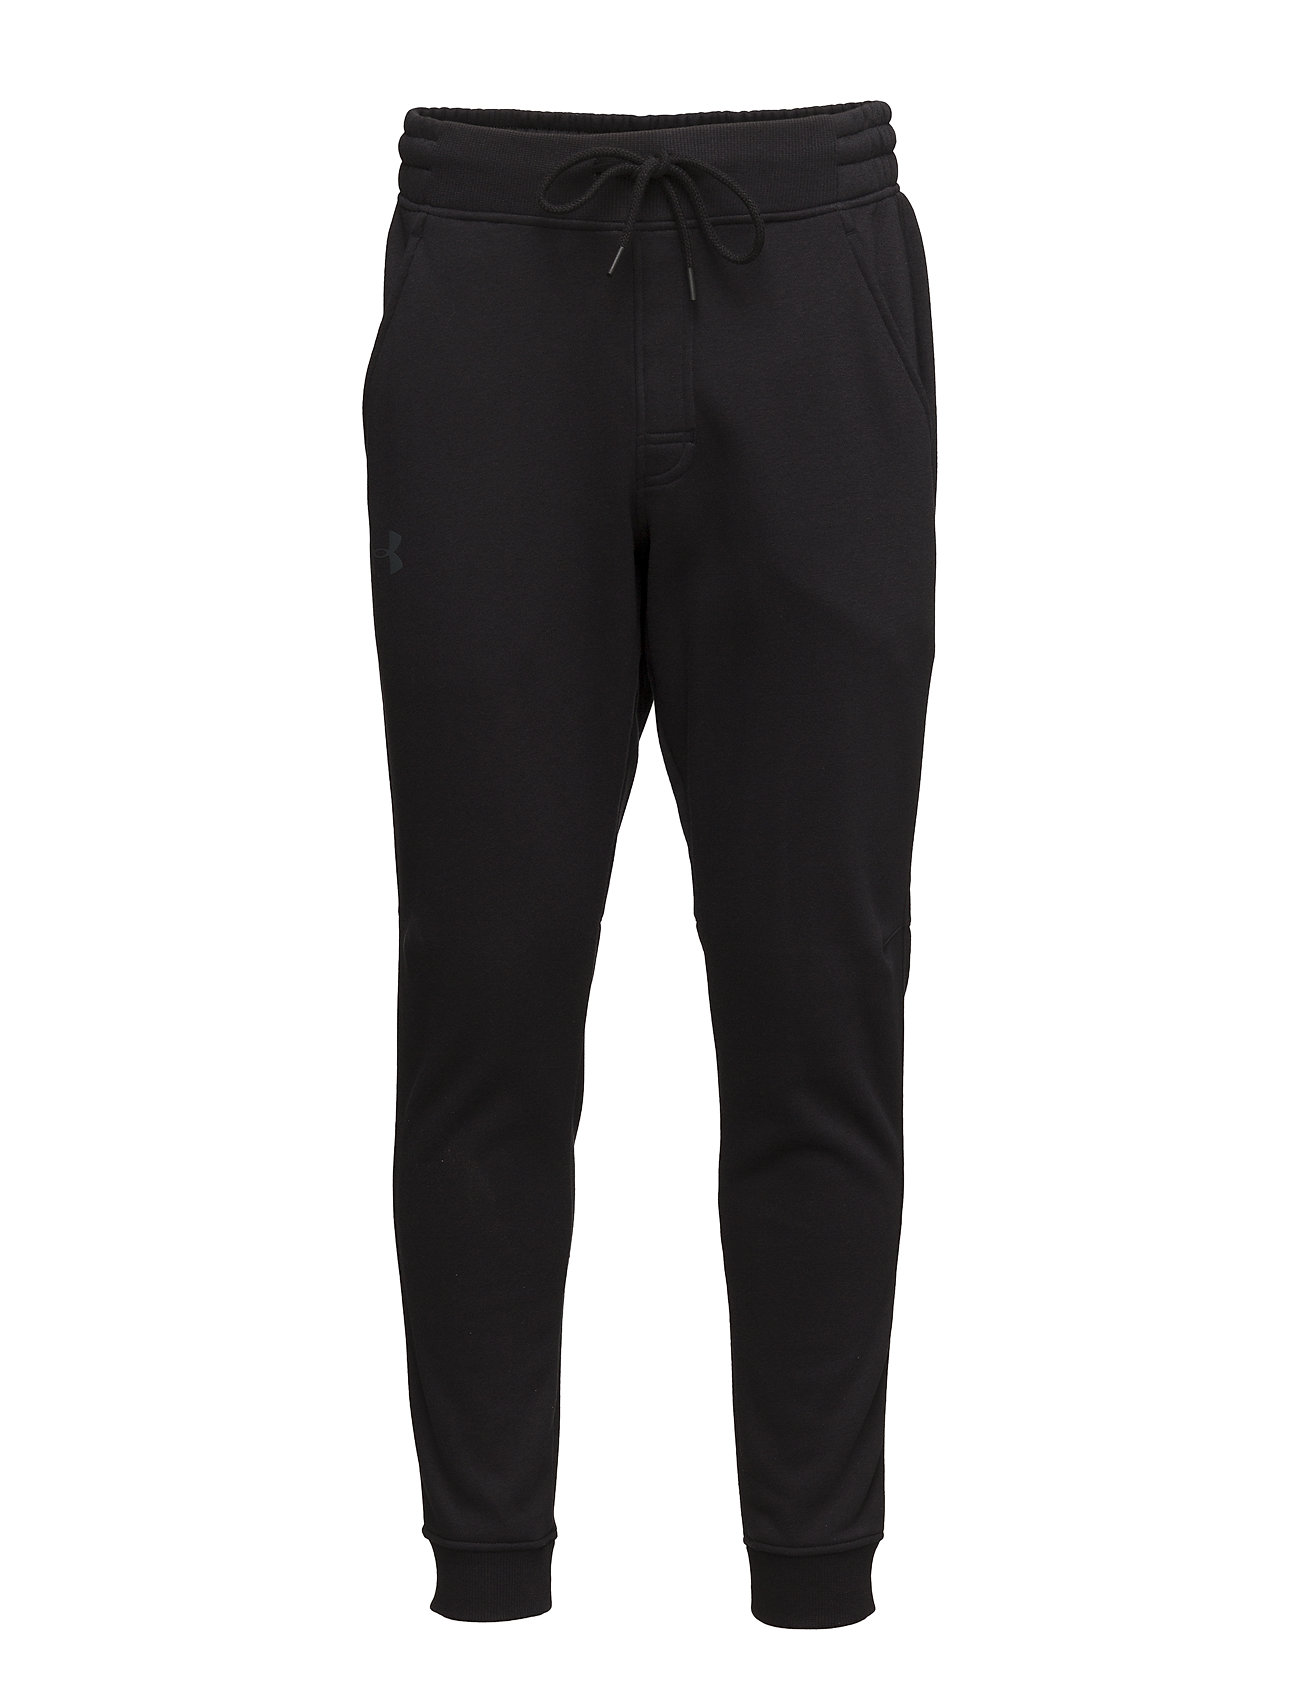 save up to 60% buy good replicas STORM RIVAL COTTON JOGGER